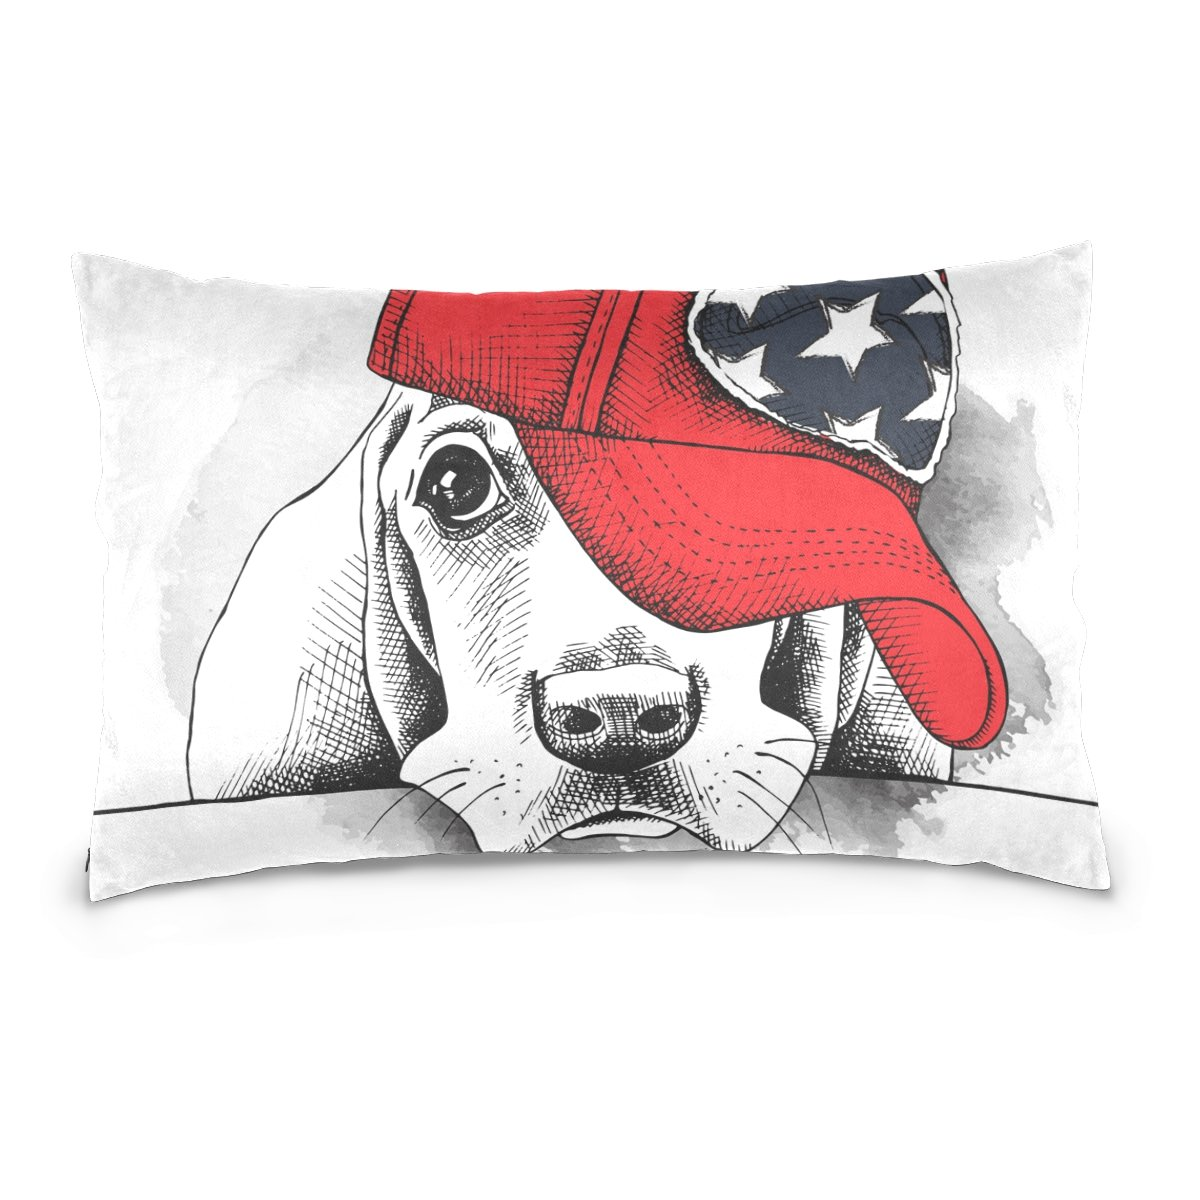 Pillow Covers Pillow Protectors Bed Bug Dust Mite Resistant Standard Pillow Cases Cotton Sateen Allergy Proof Soft Quality Covers with Hat Christmas Cute Animal Dog for Bedding